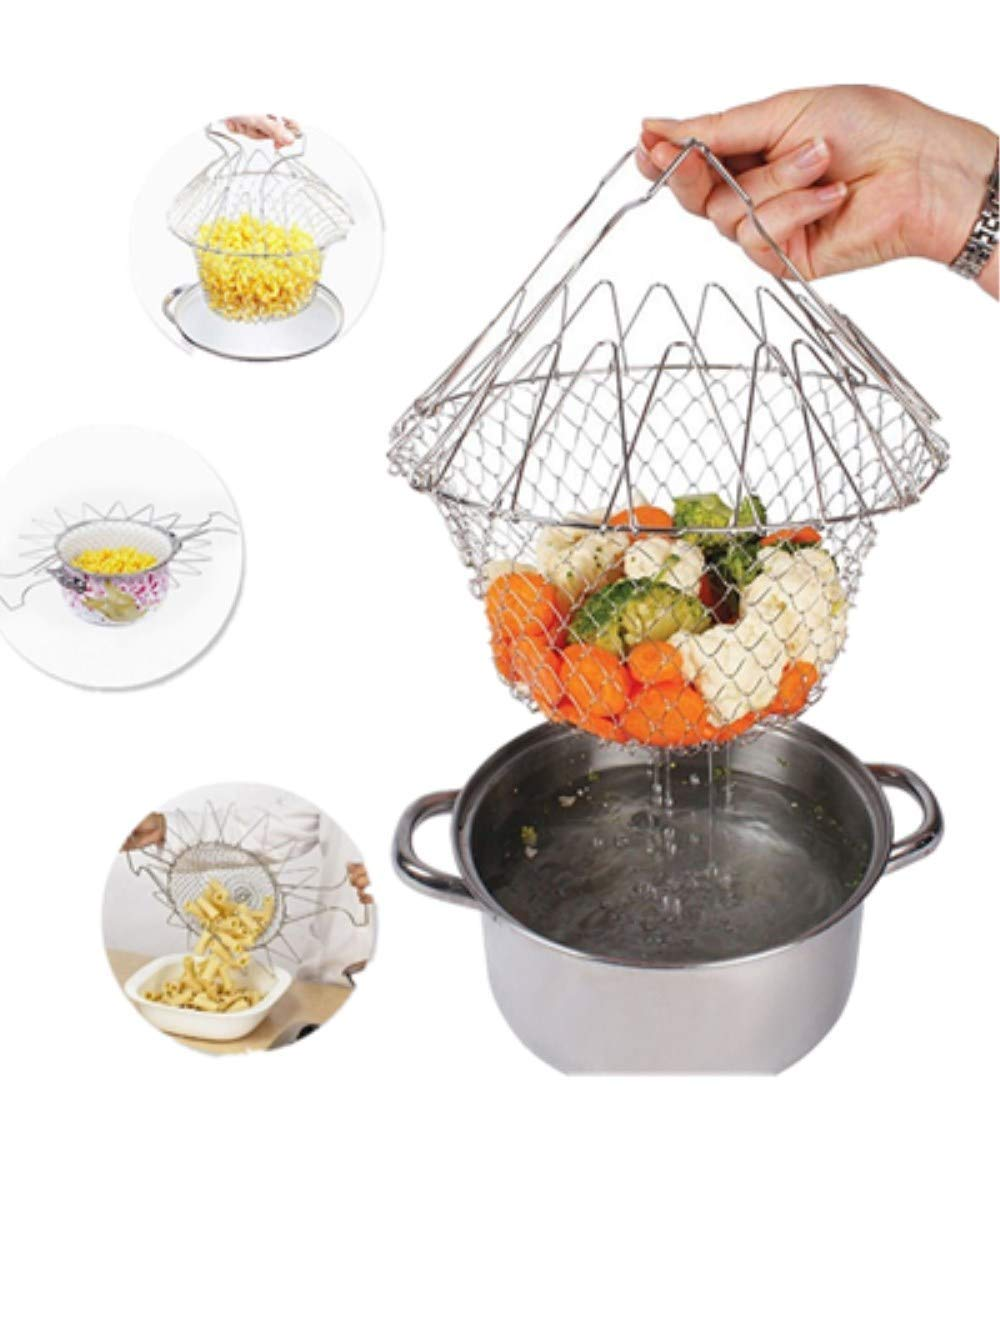 New chef basket Foldable Stainless Steel Fryer Basket, Safe and Not Hurt Your Hands(23cm*11cm) I Have a DREAM